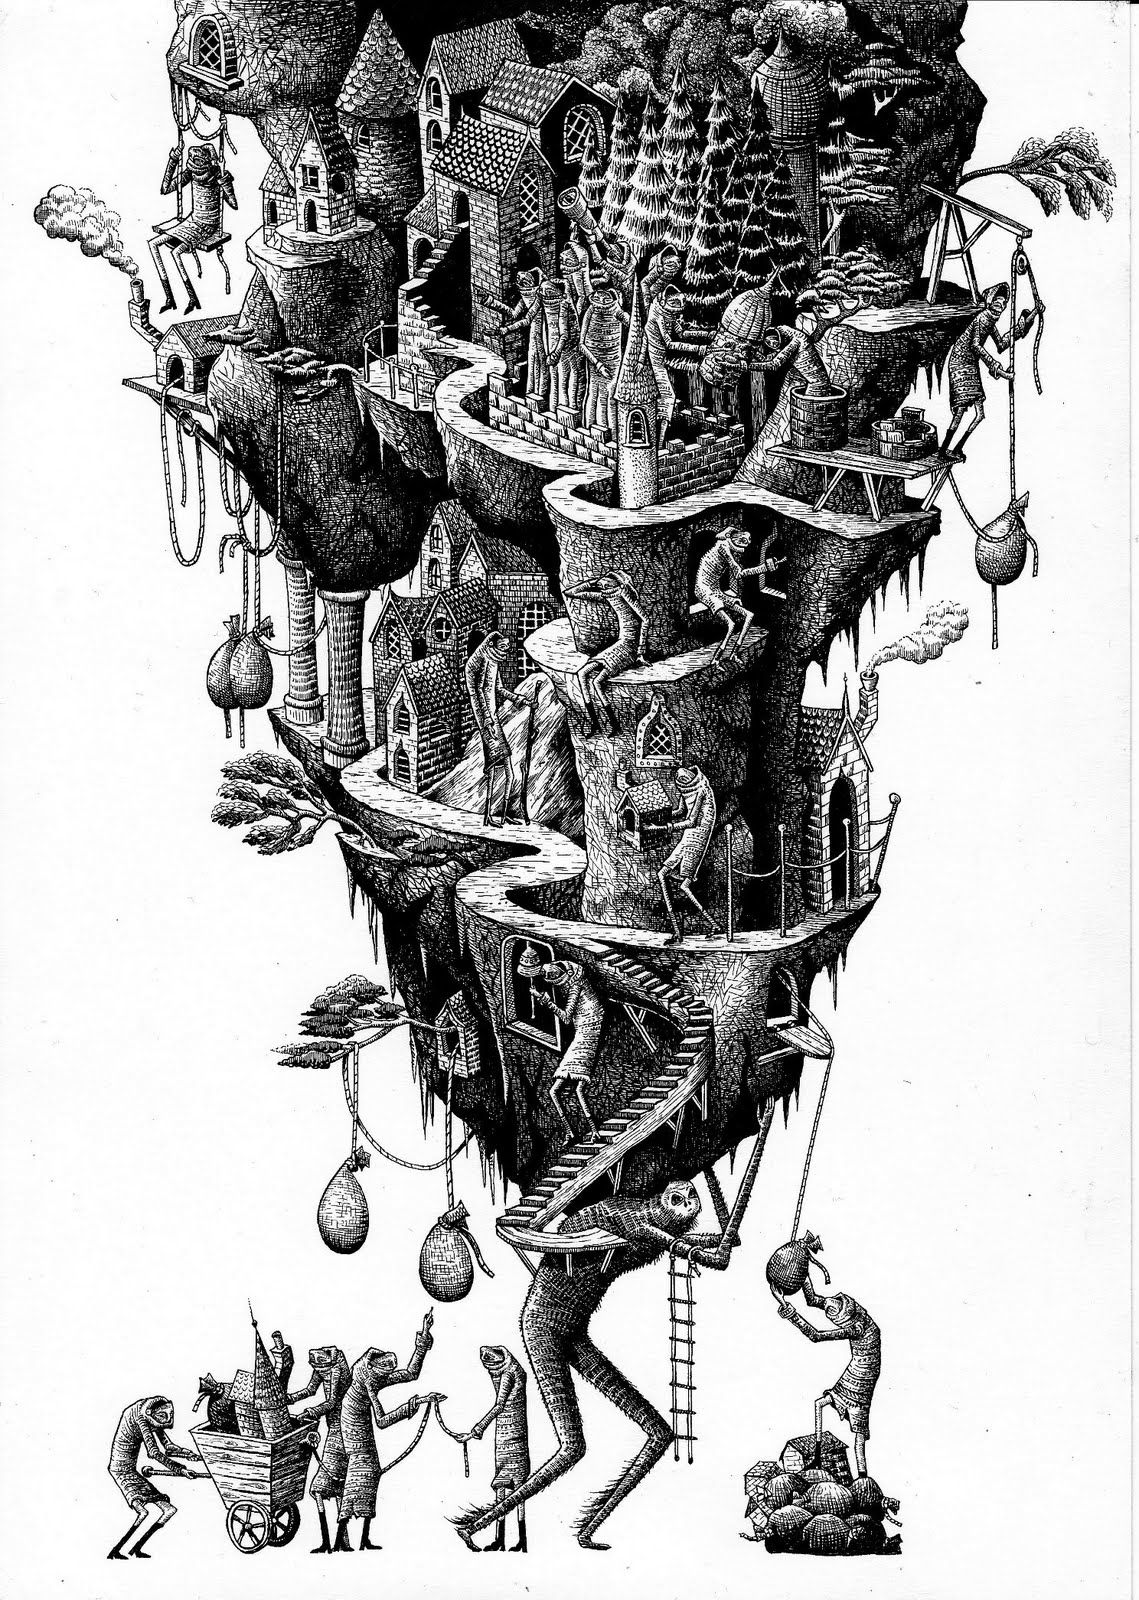 Phlegm, civilisation (pt1 of 3) 2012, A4 dip pen and black ink.